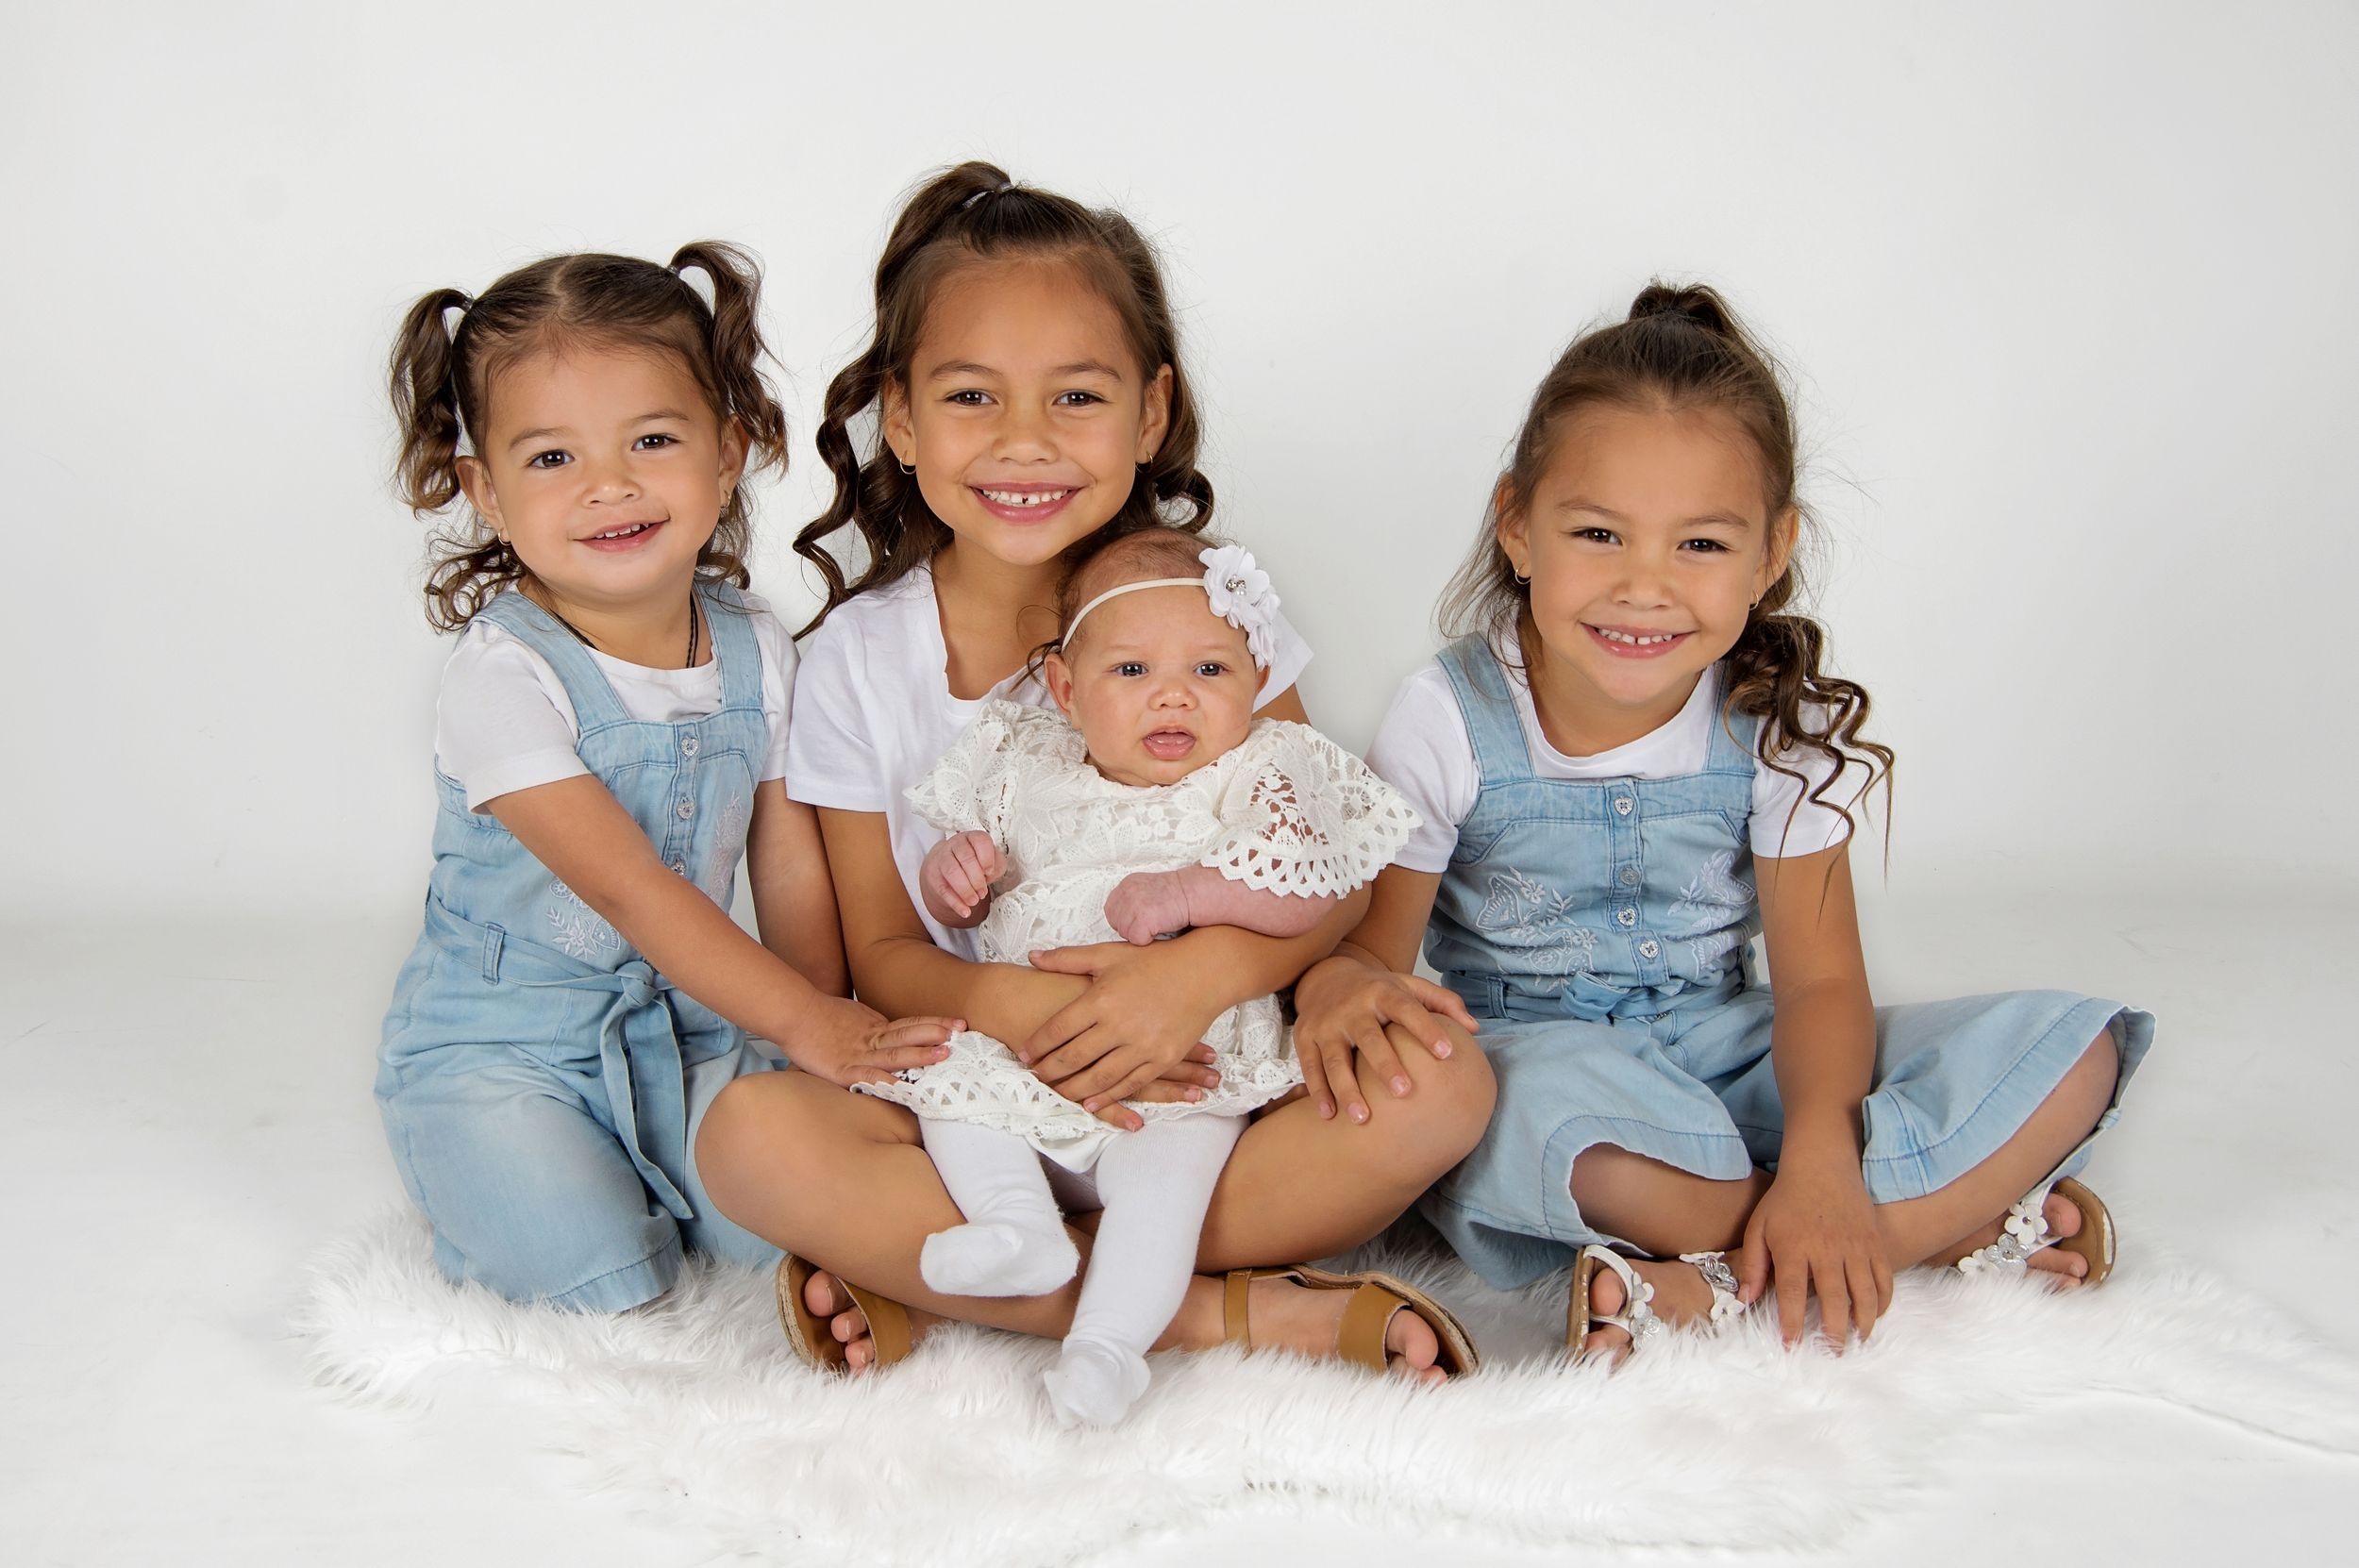 3 young girls holding baby sister smiling at camera in studio